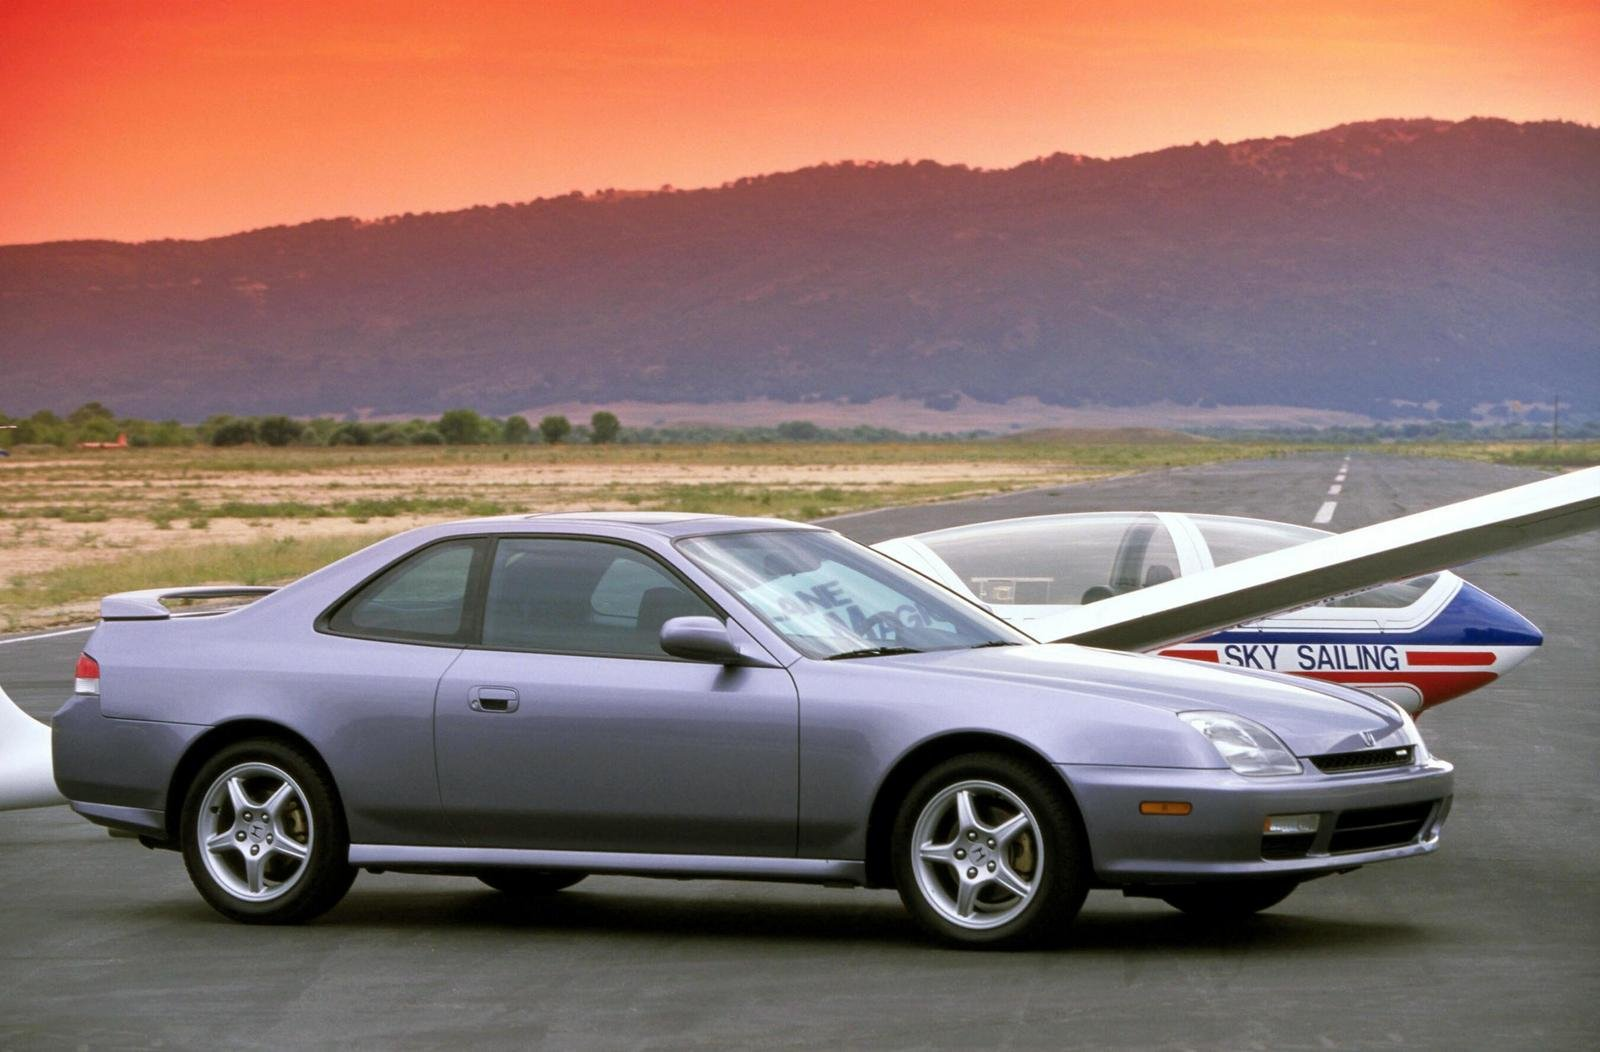 2001 honda prelude picture 73871 car review top speed. Black Bedroom Furniture Sets. Home Design Ideas